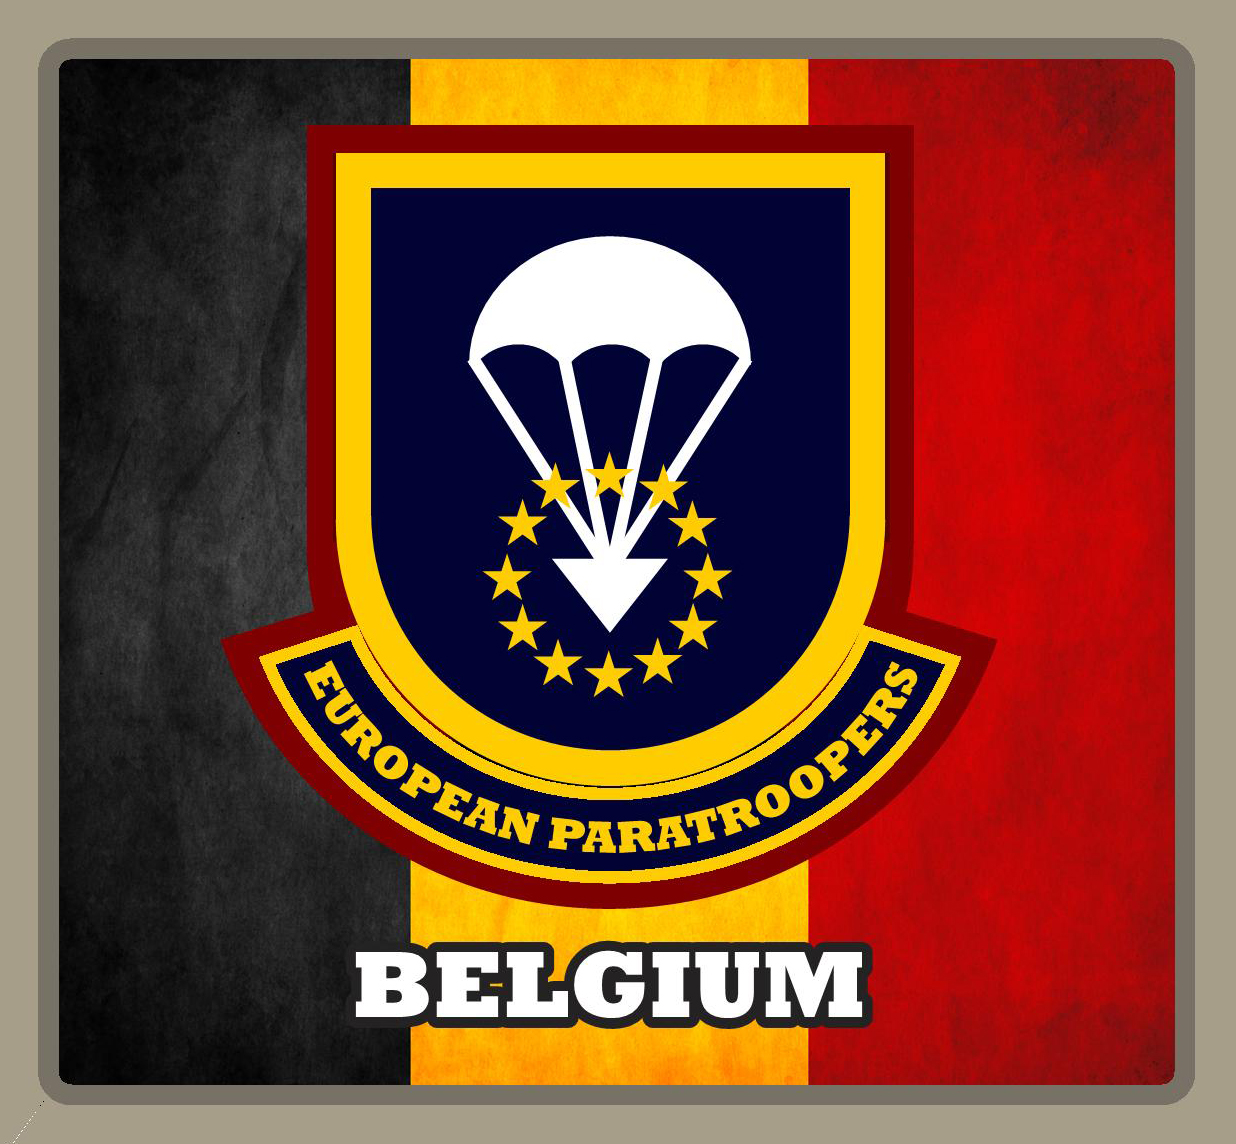 EUROPEAN PARATROOPERS BE 2017